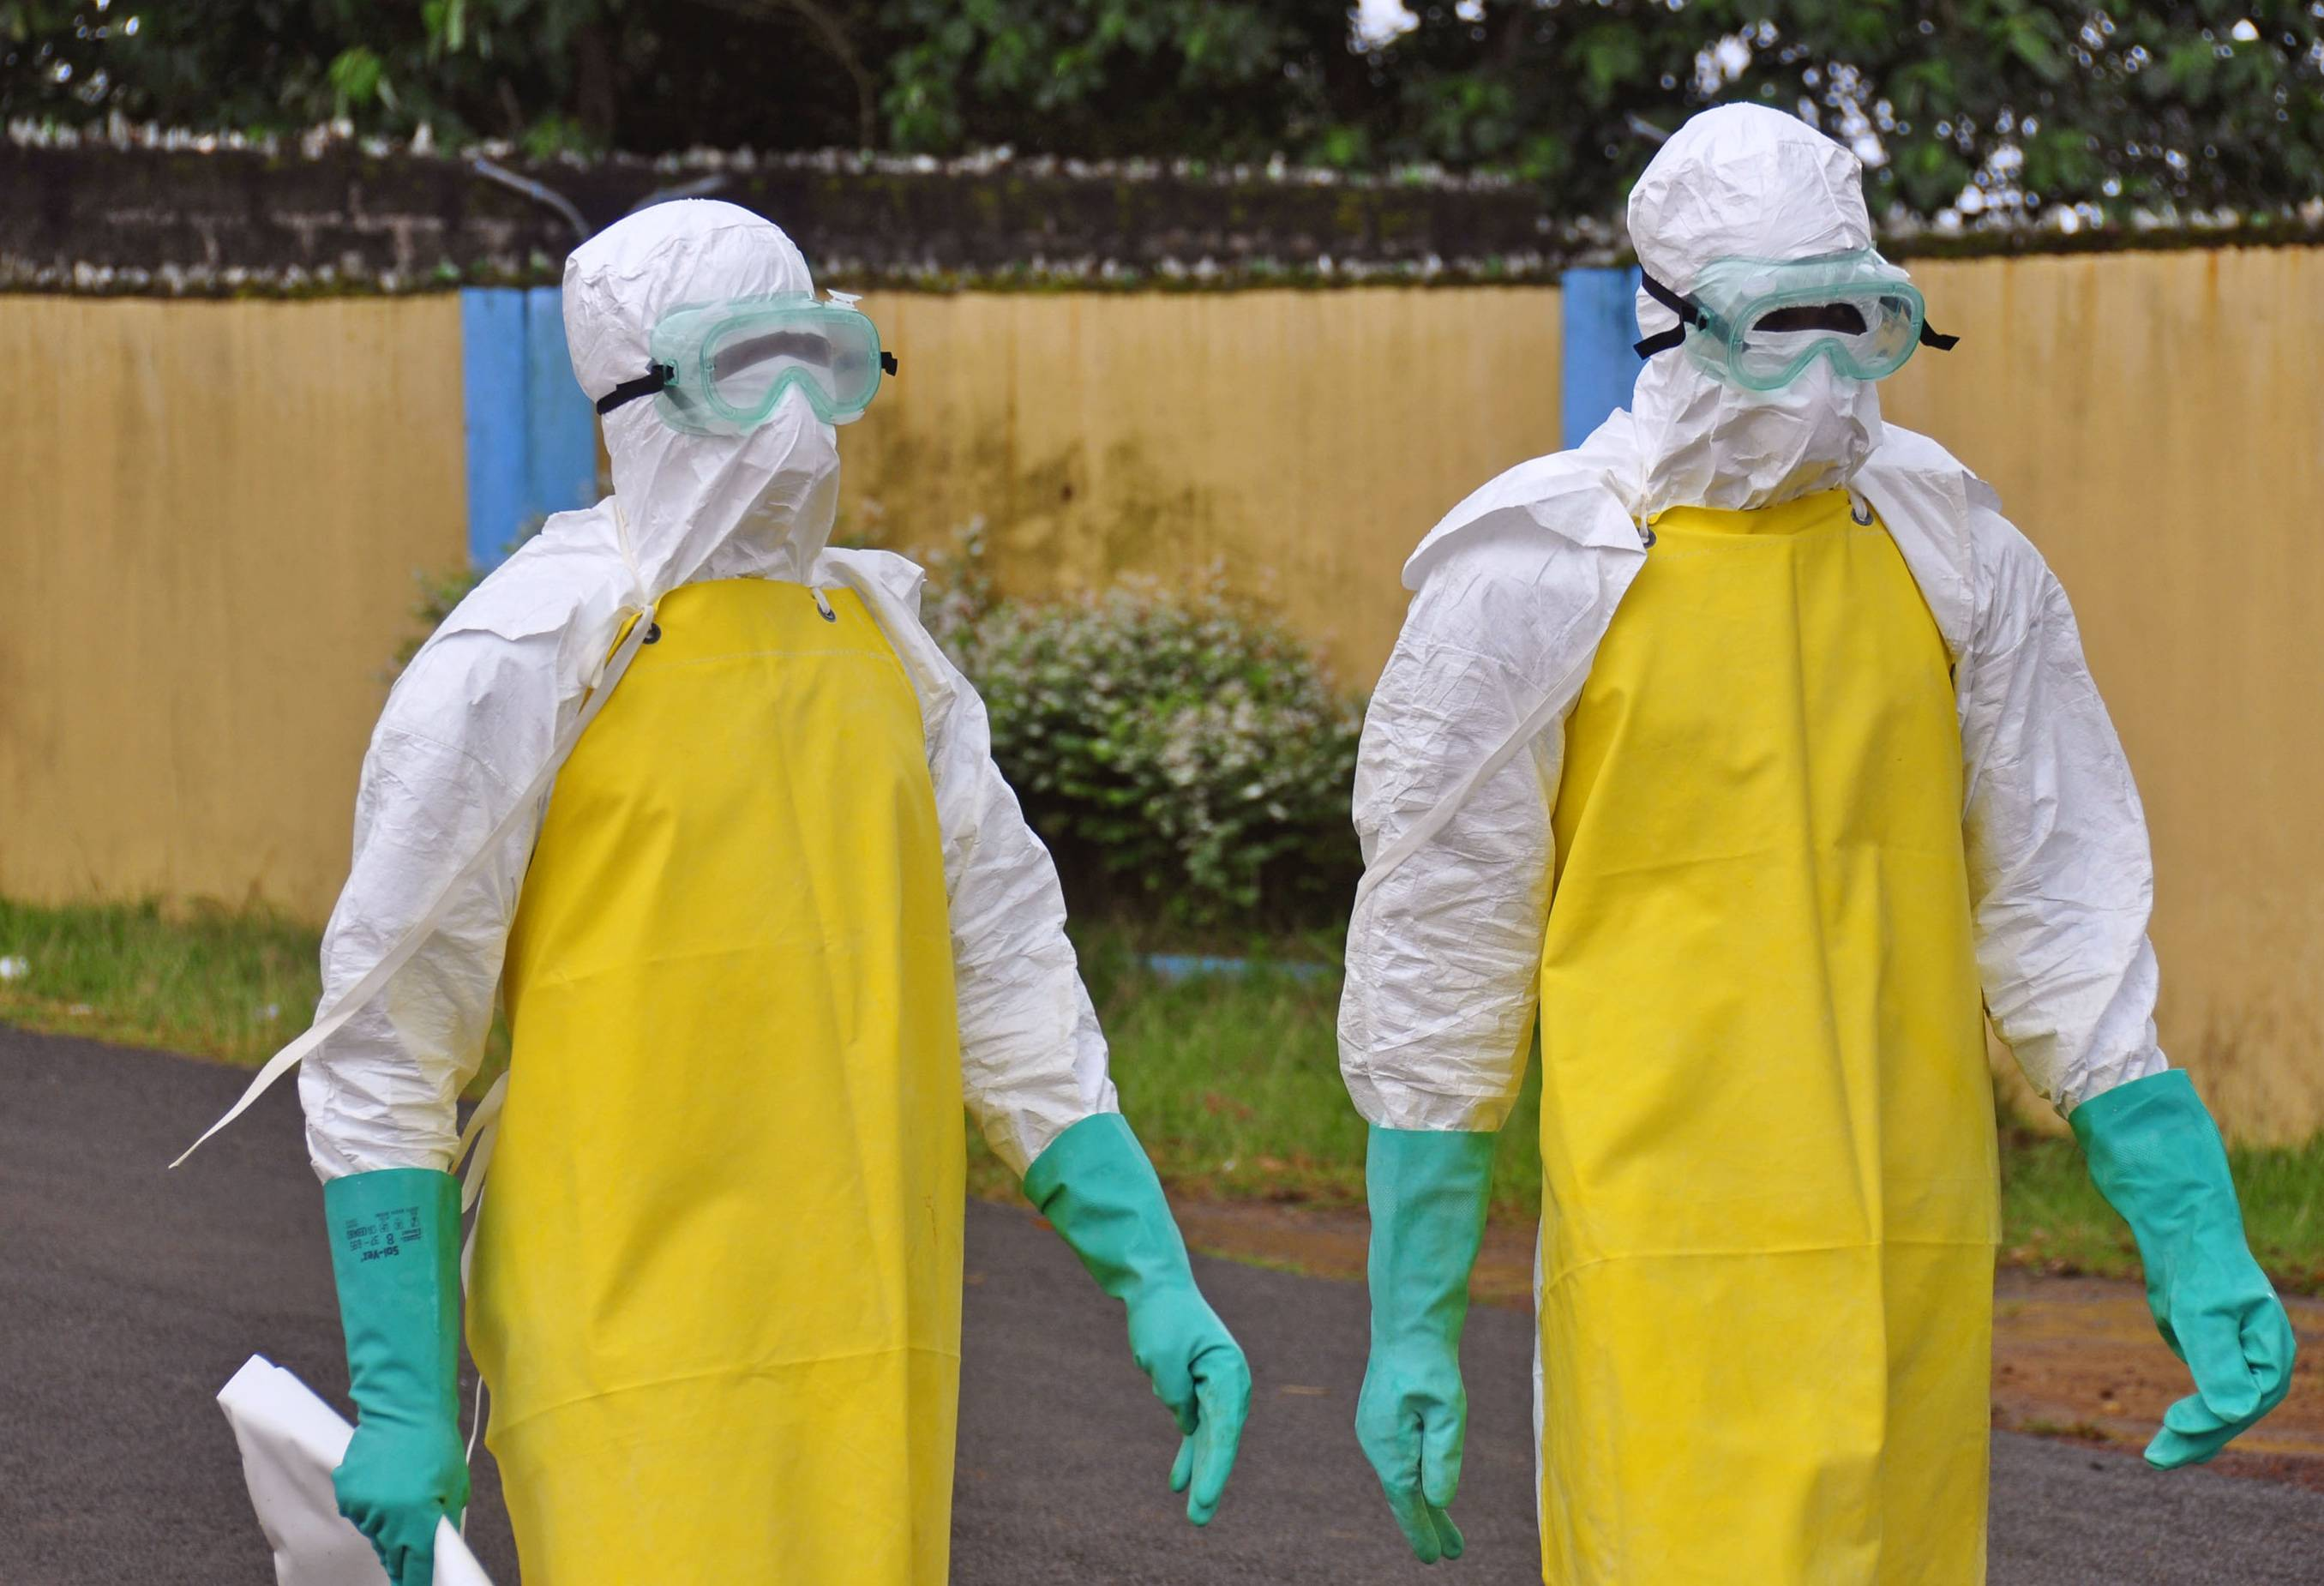 Health workers wearing protective gear Saturday go to remove the body of a person who is believed to have died after contracting the Ebola virus in the city of Monrovia, Liberia. New figures released by the World Health Organization showed that Liberia has recorded more Ebola deaths -- 413 -- than any of the other affected countries.